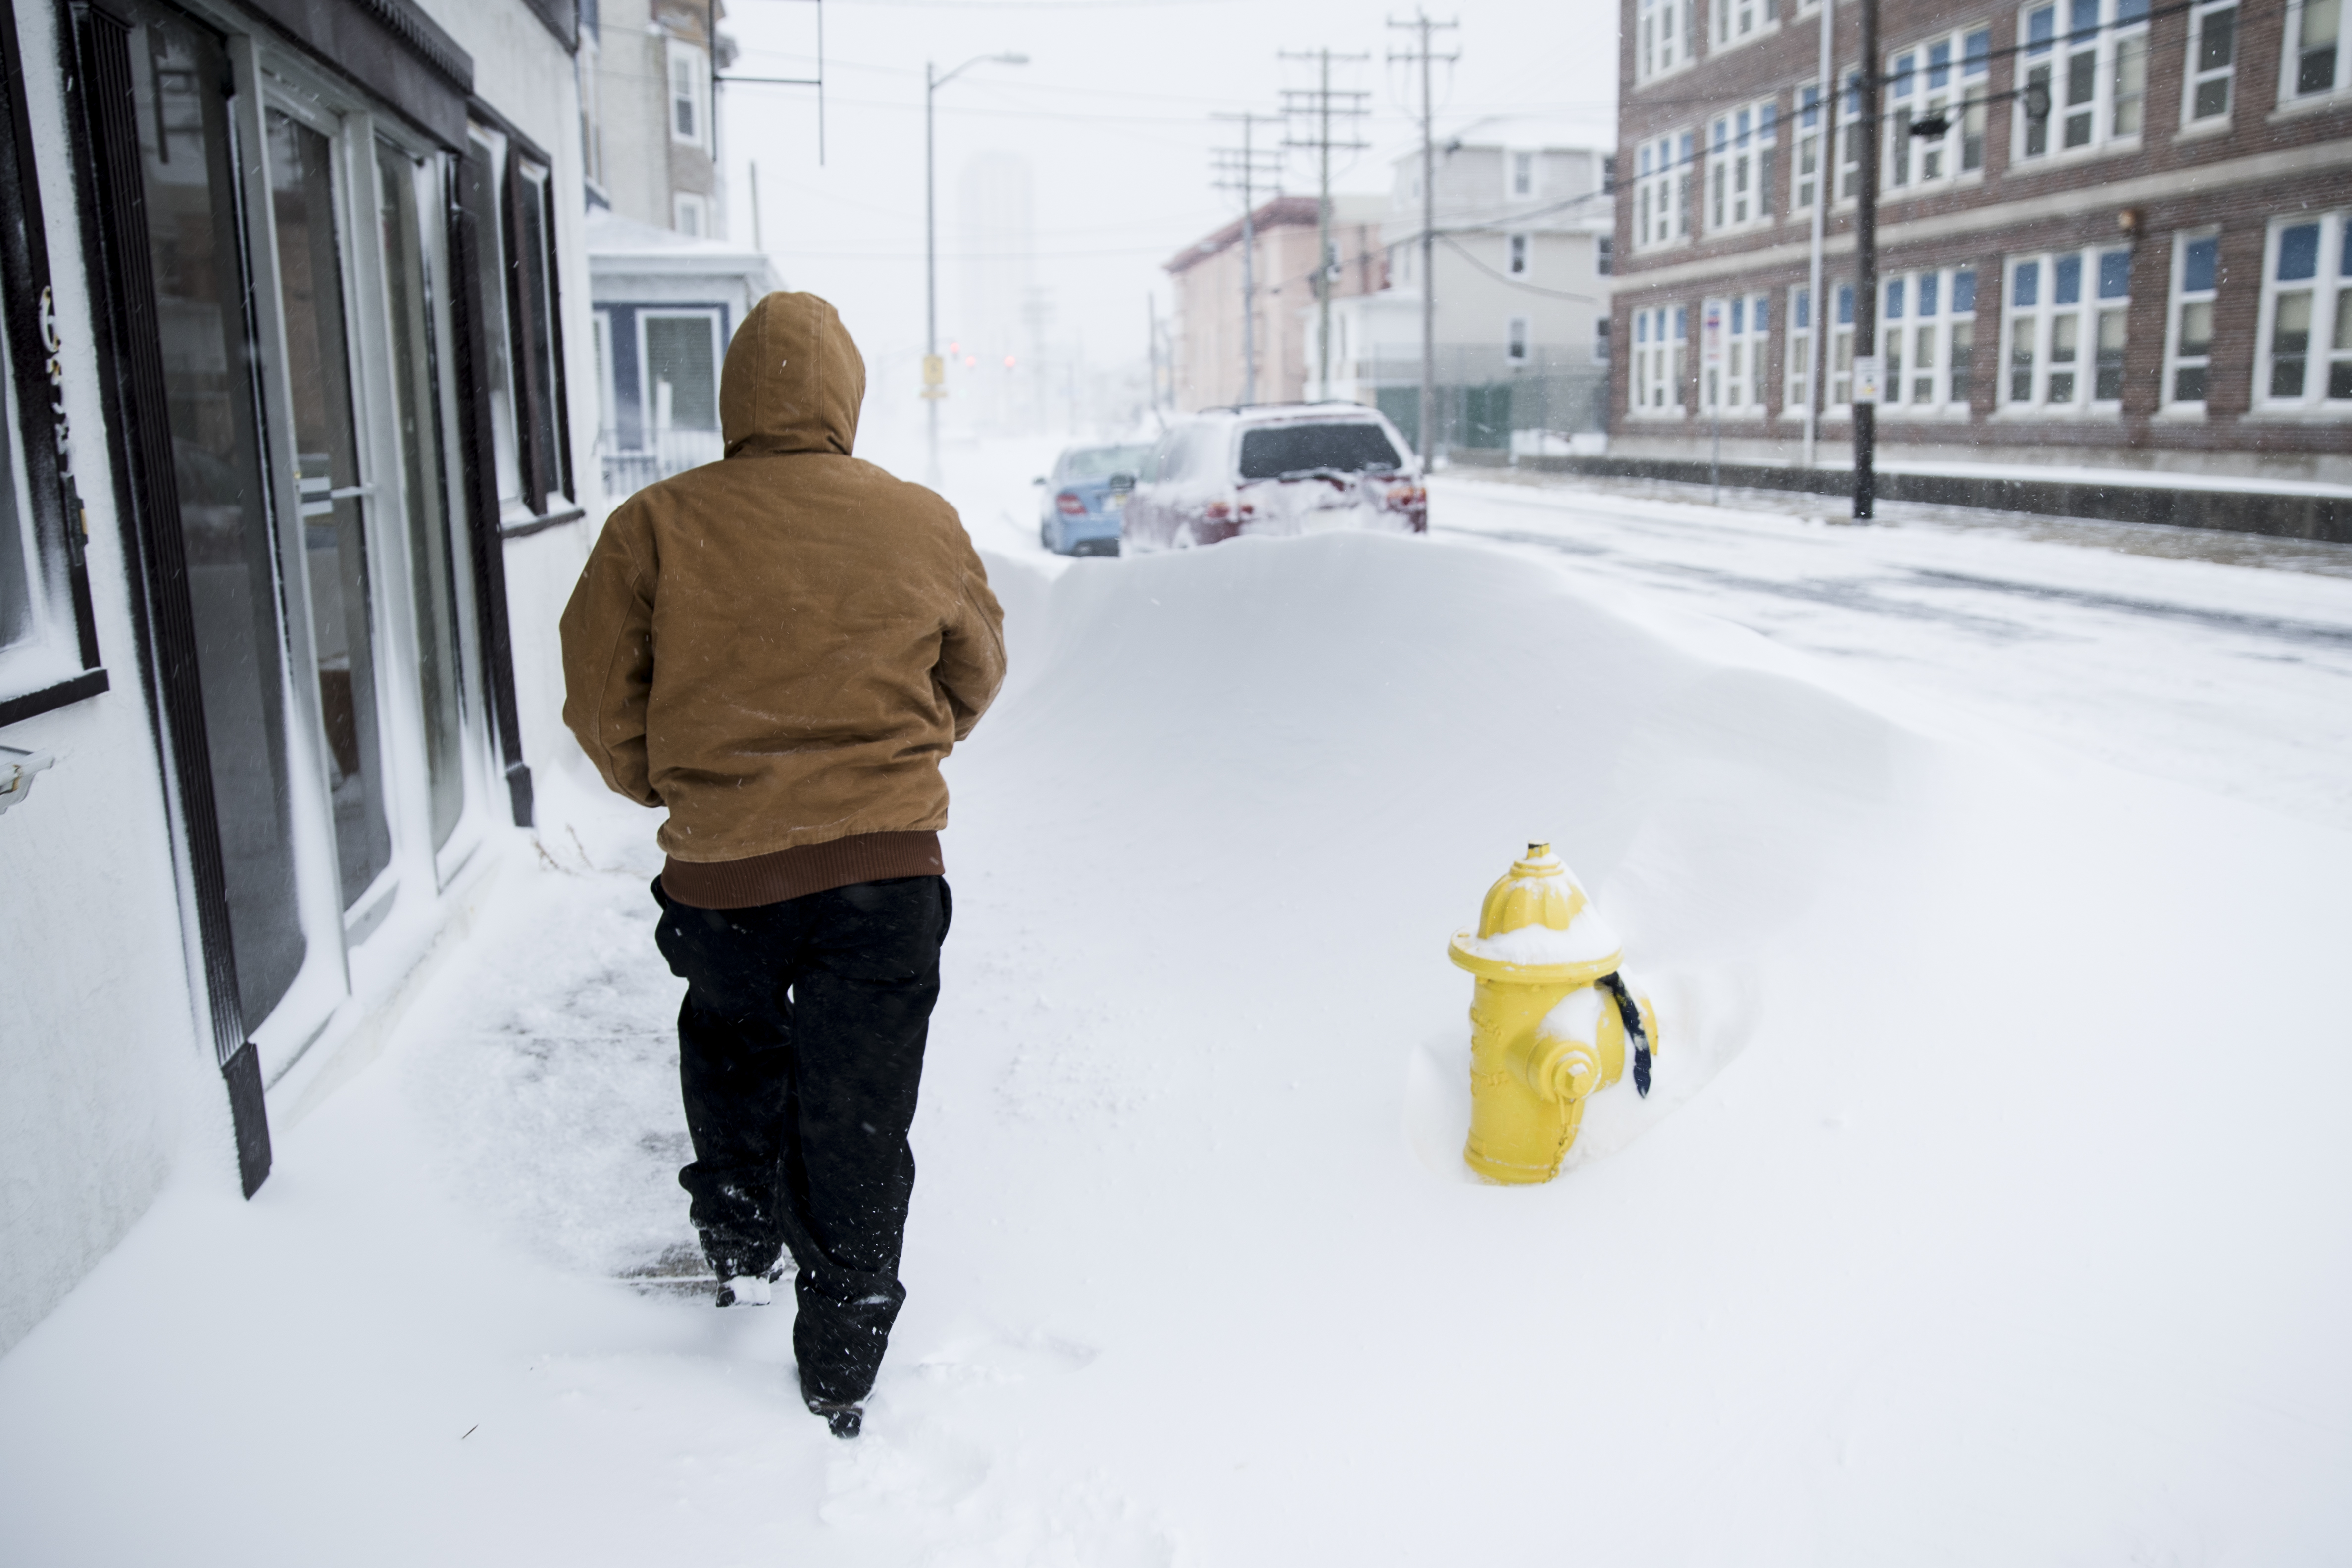 "<div class=""meta image-caption""><div class=""origin-logo origin-image none""><span>none</span></div><span class=""caption-text"">A person walks during a snowstorm in Atlantic City, N.J., Thursday, Jan. 4, 2018. (AP Photo/Matt Rourke) (AP)</span></div>"